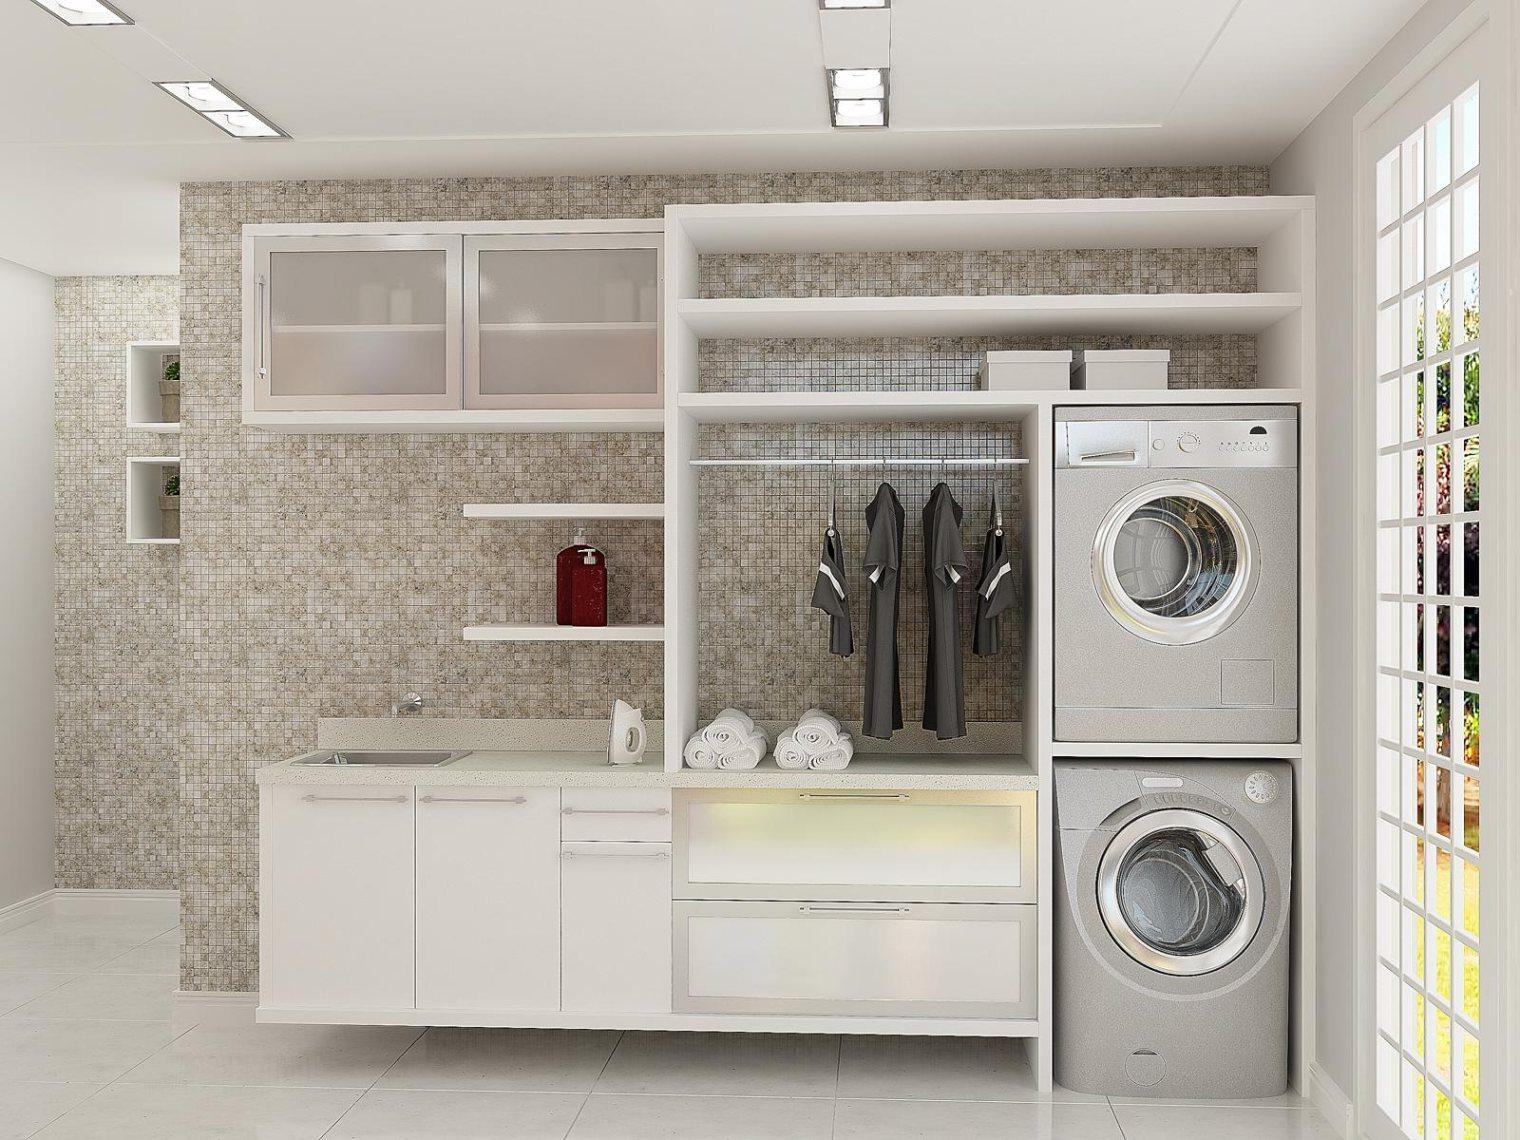 50 best laundry room design ideas for 2016 - Laundry room design for small spaces minimalist ...